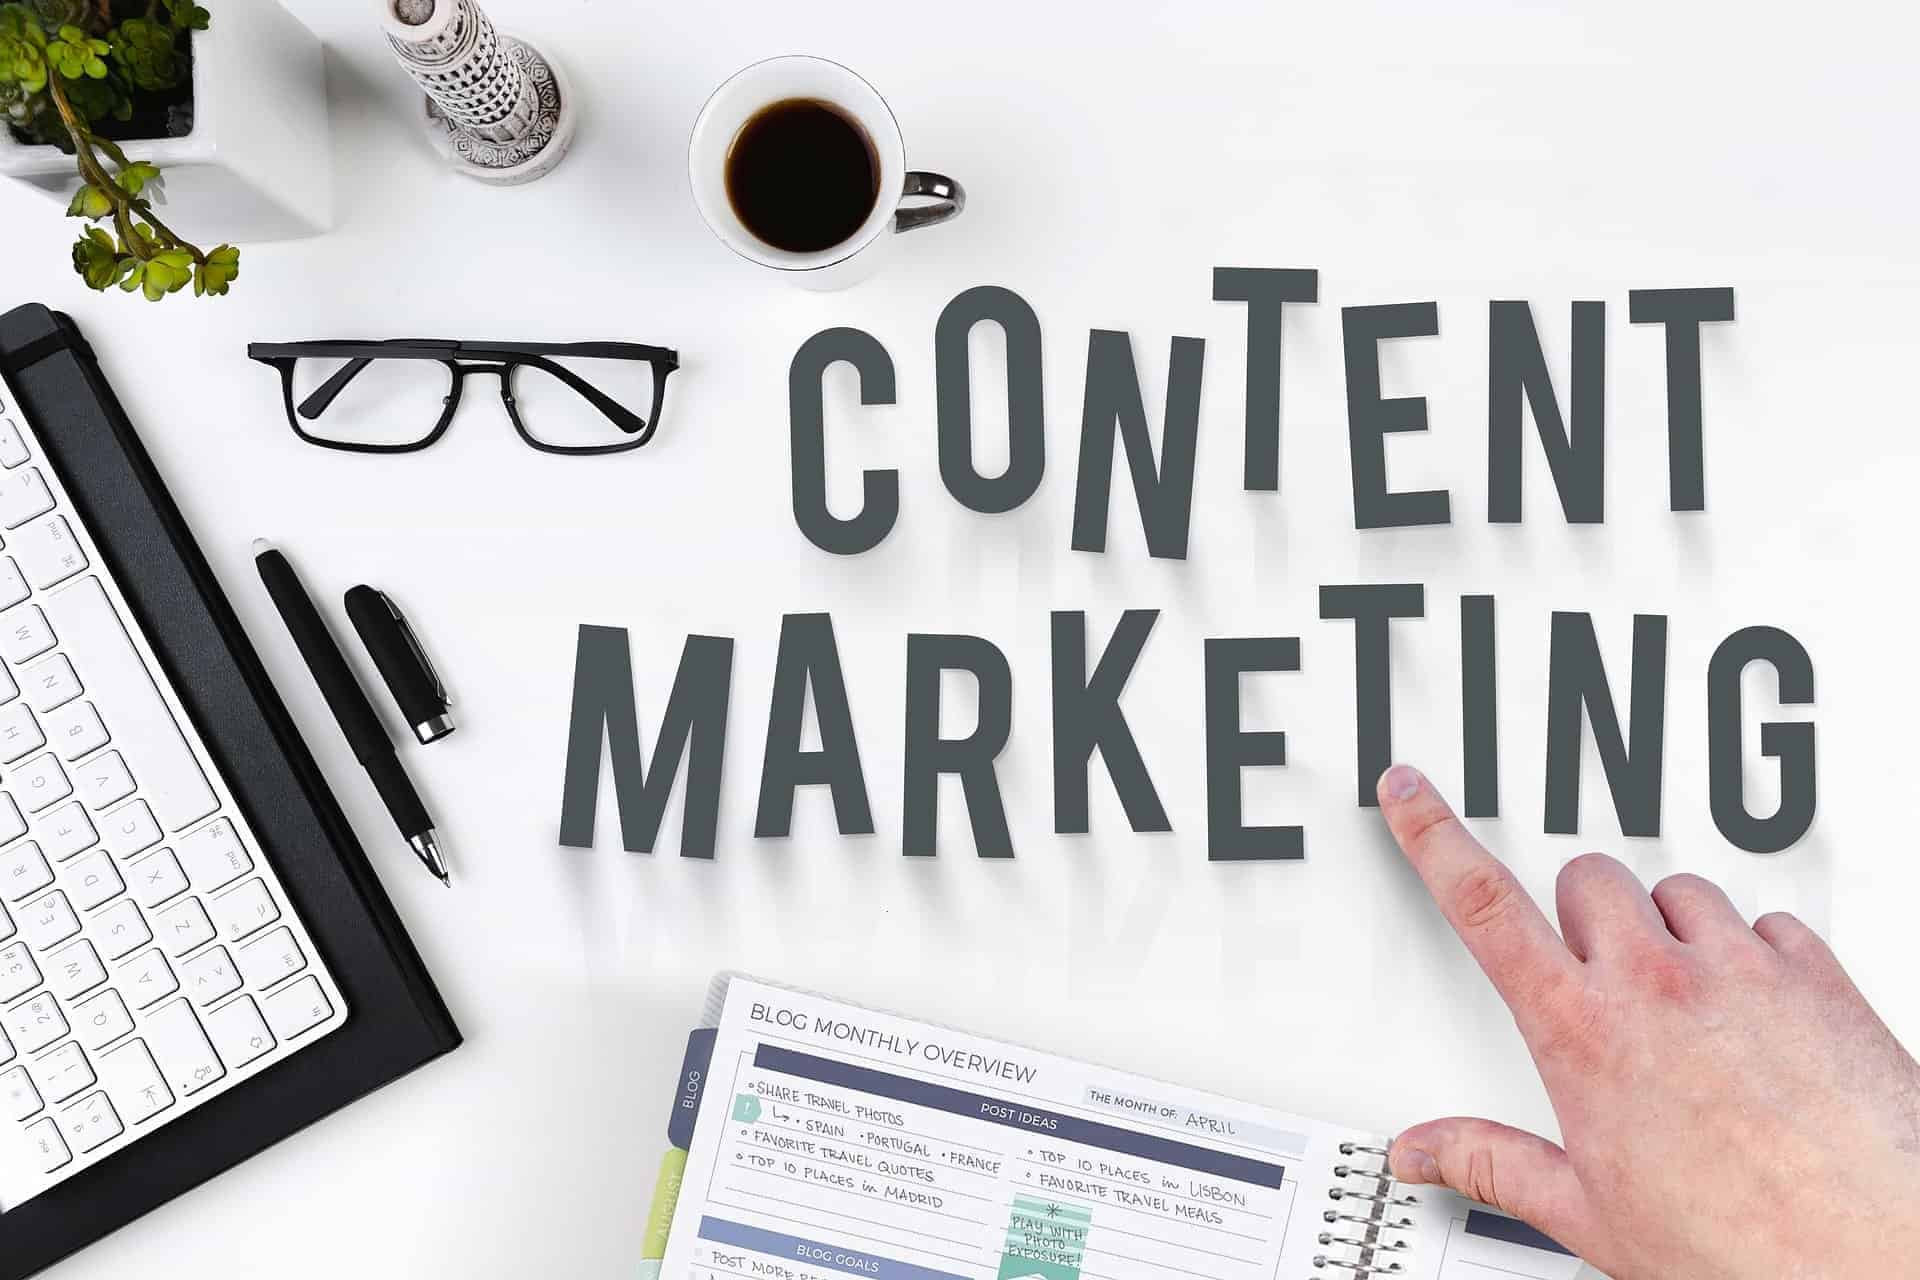 What Is Content Marketing (About)?